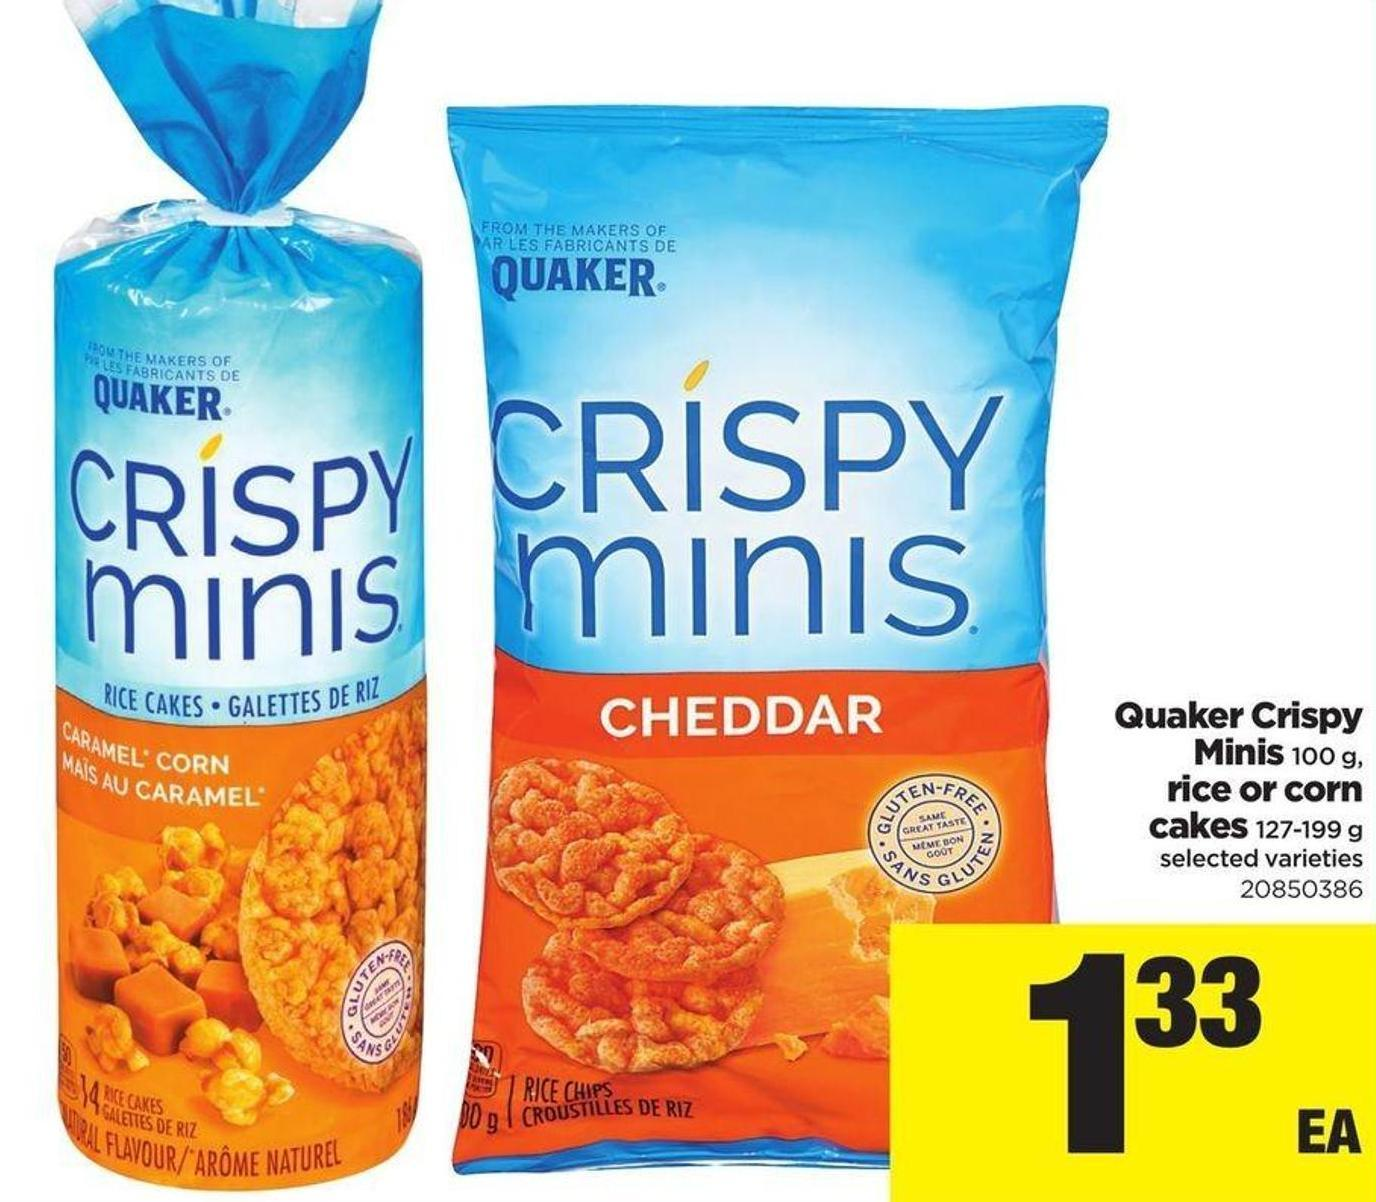 Quaker Crispy Minis 100 G - Rice Or Corn Cakes 127-199 G